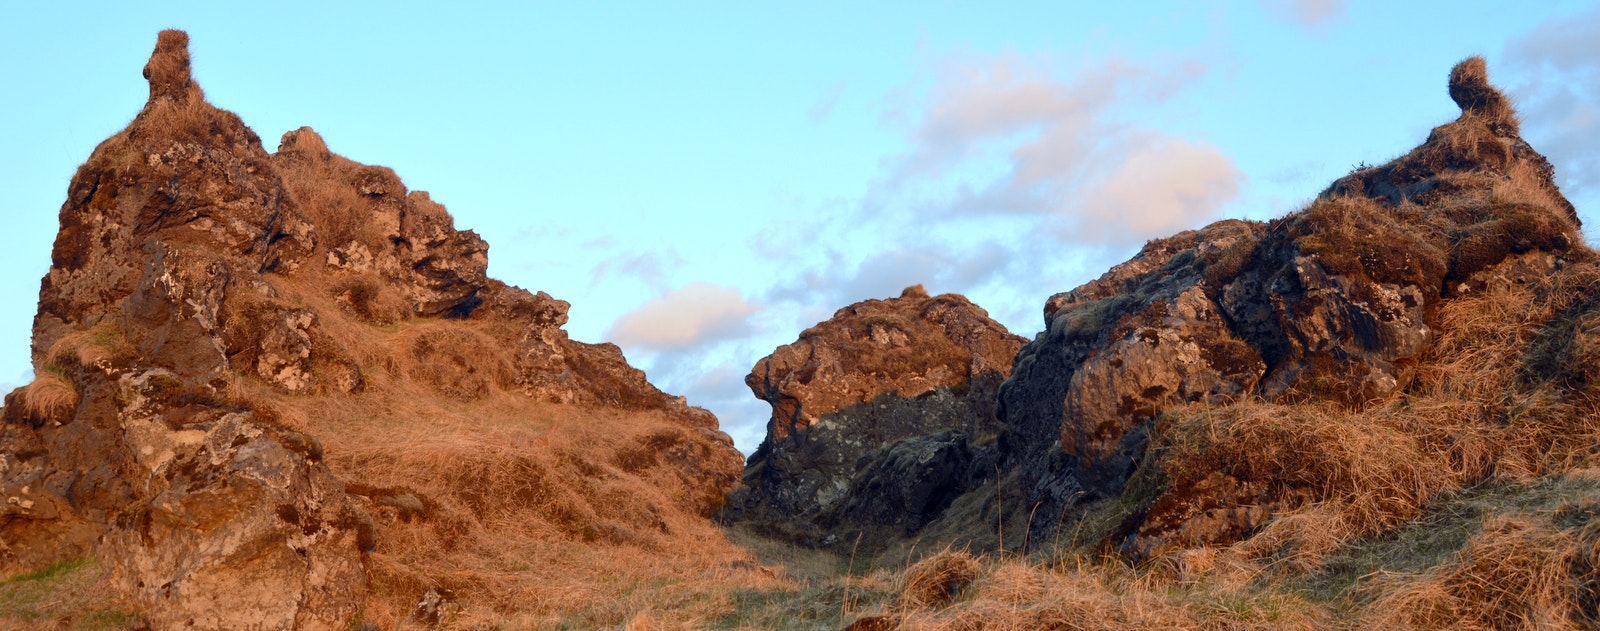 The Beautiful Elf City and Elf Church by Hotel Laki in South-Iceland